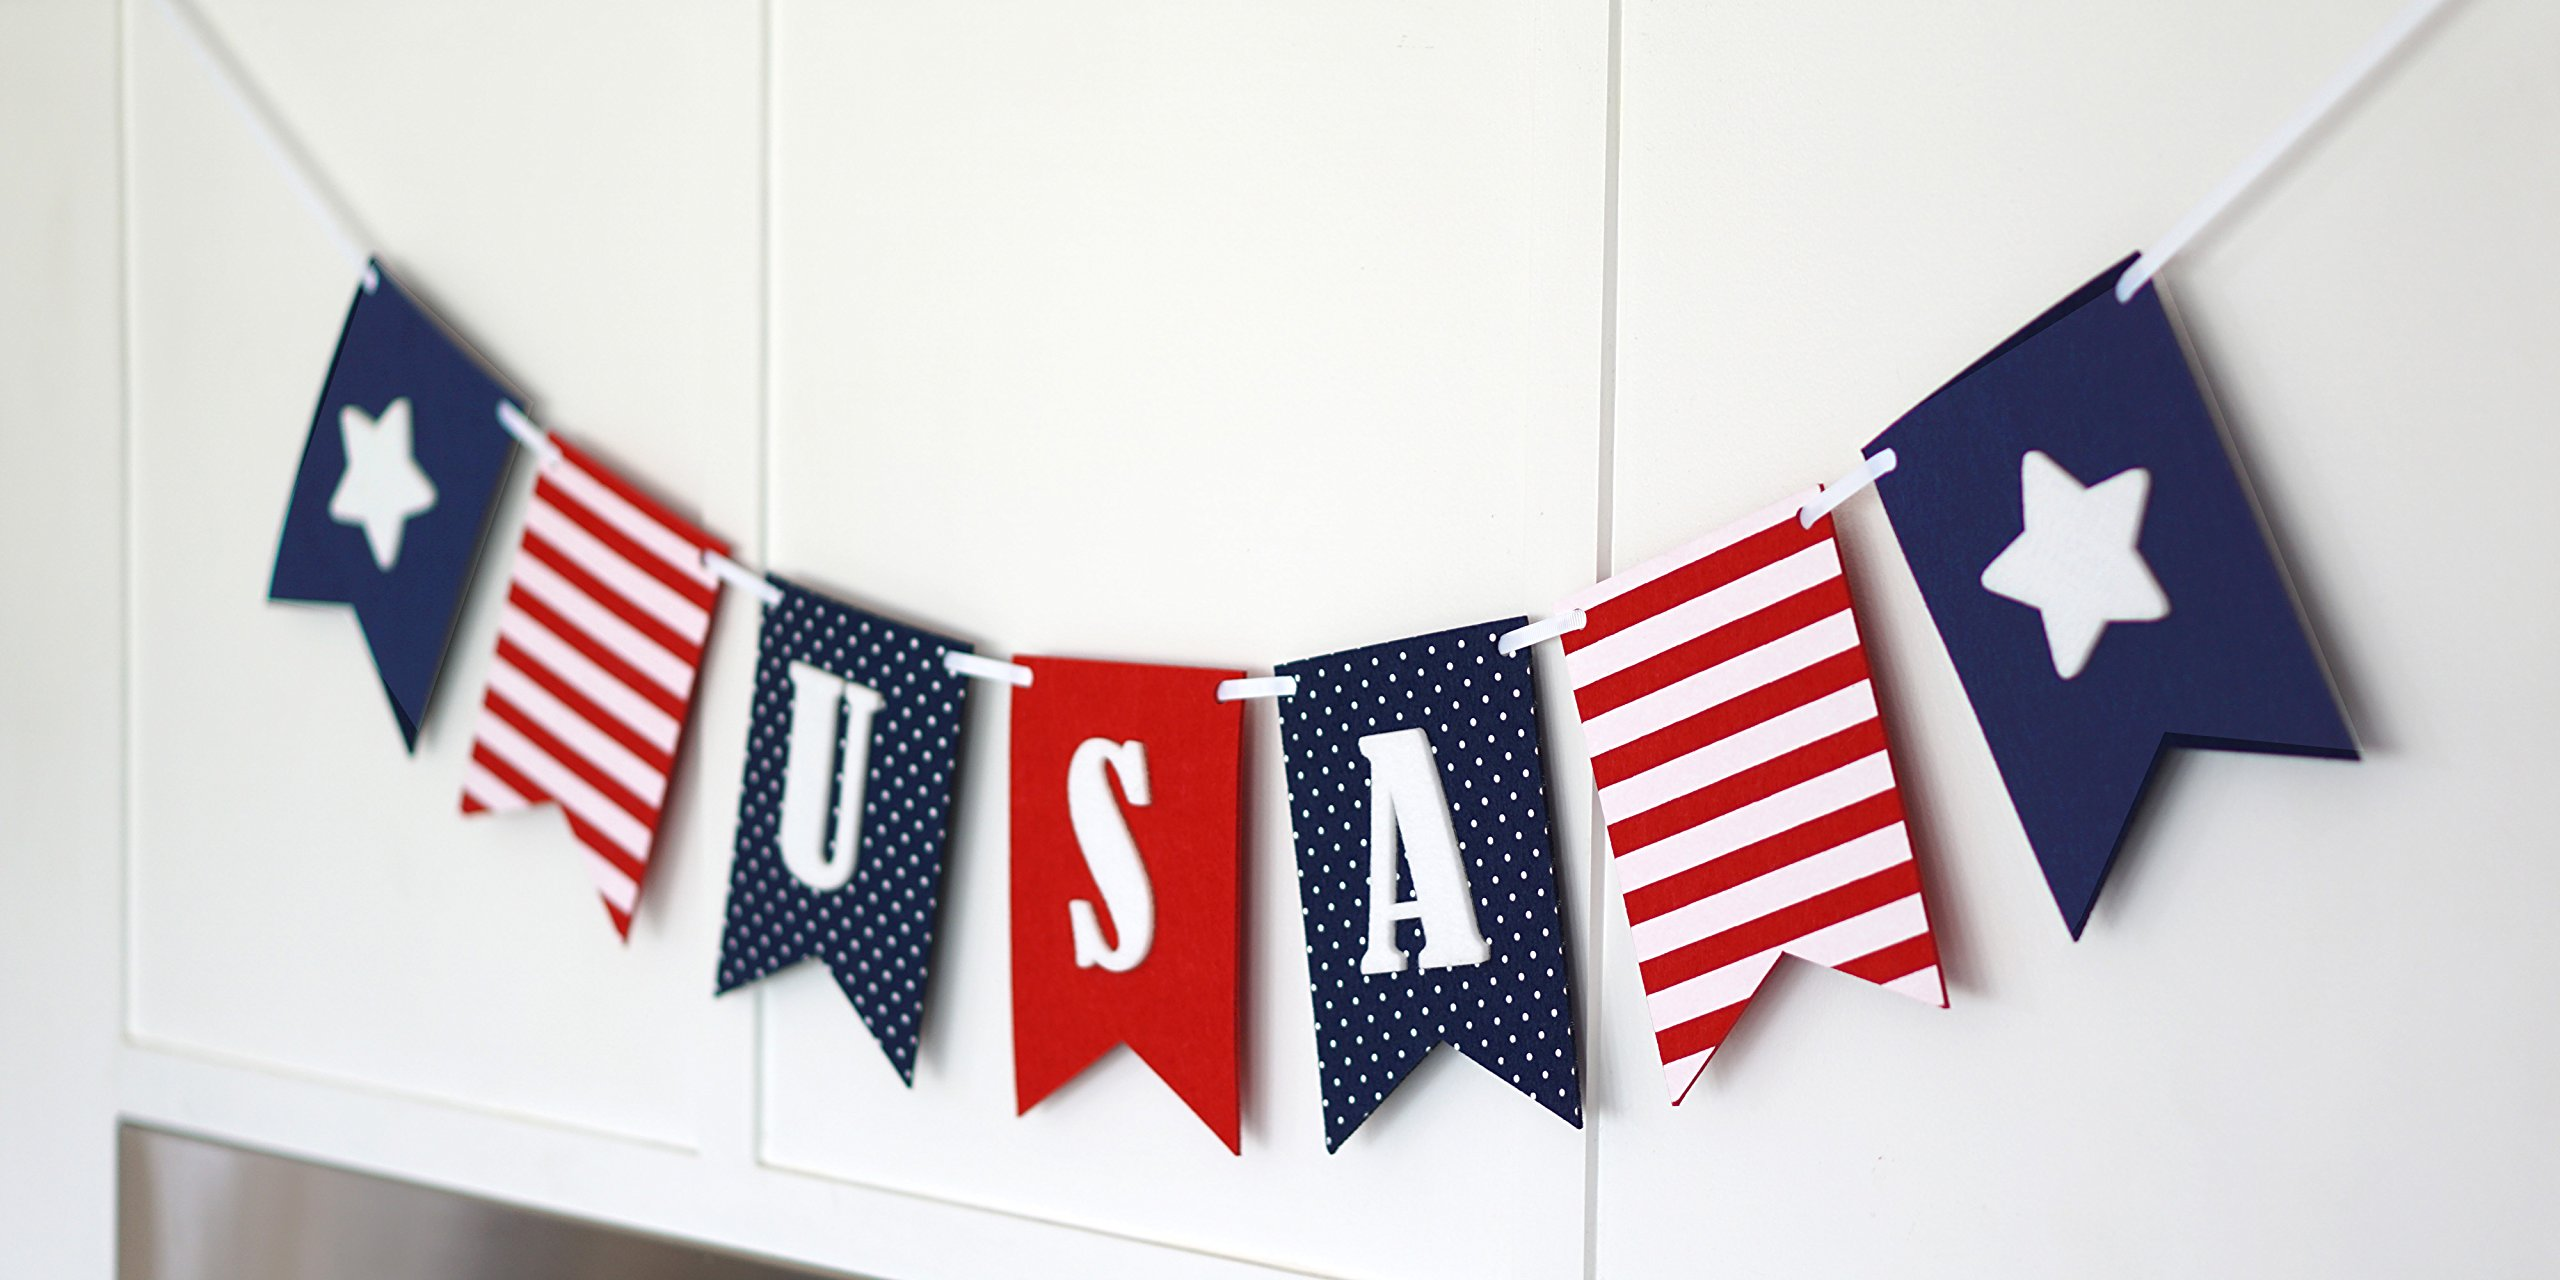 USA Banner Bunting Laser Cut Felt 40 inches wide - Patriotic Americana Red, White, & Blue America! by Decomod (Image #4)